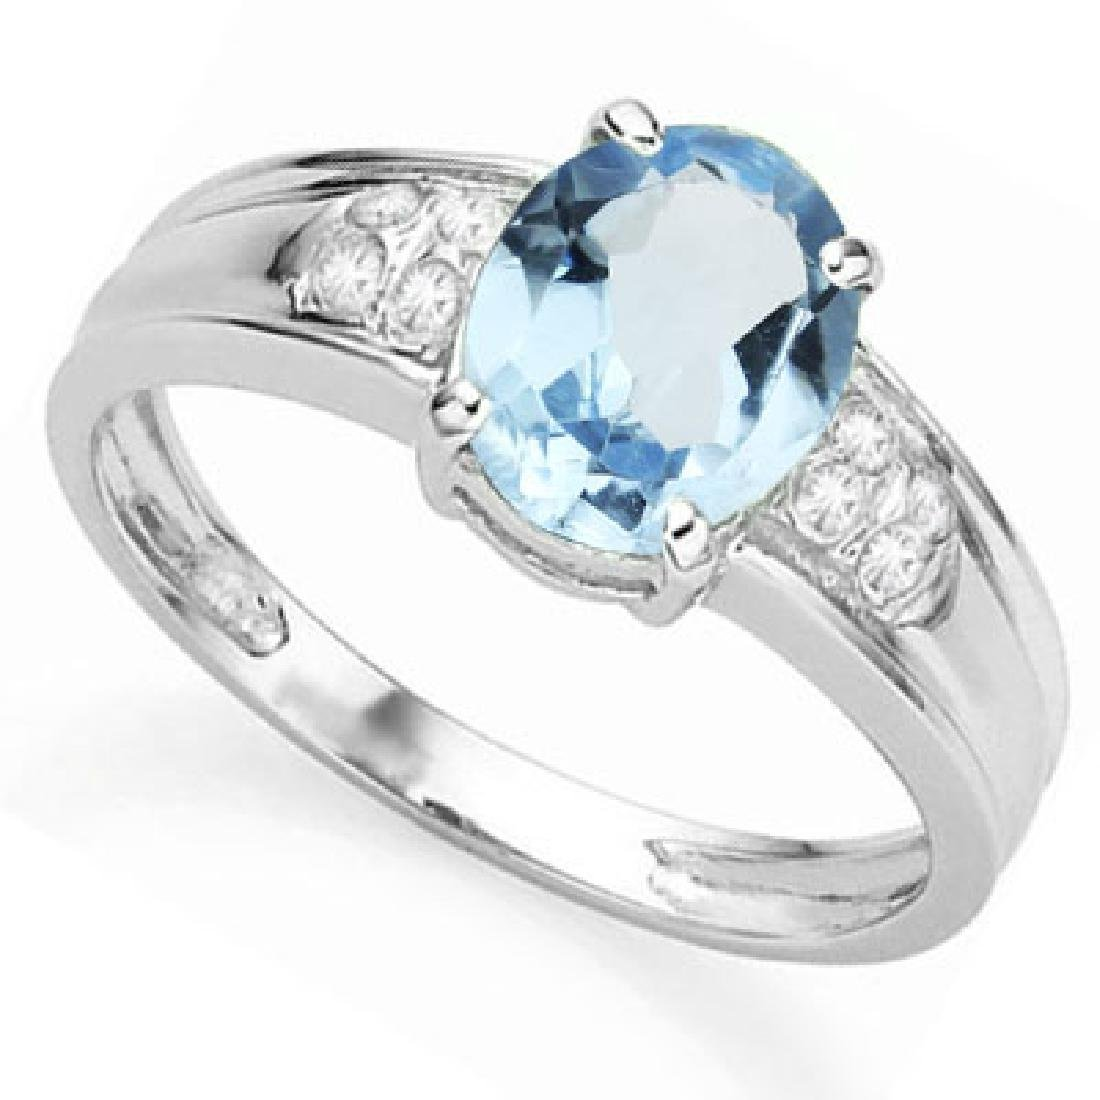 Sky Blue Topaz Ring with Diamond Accent in Sterling